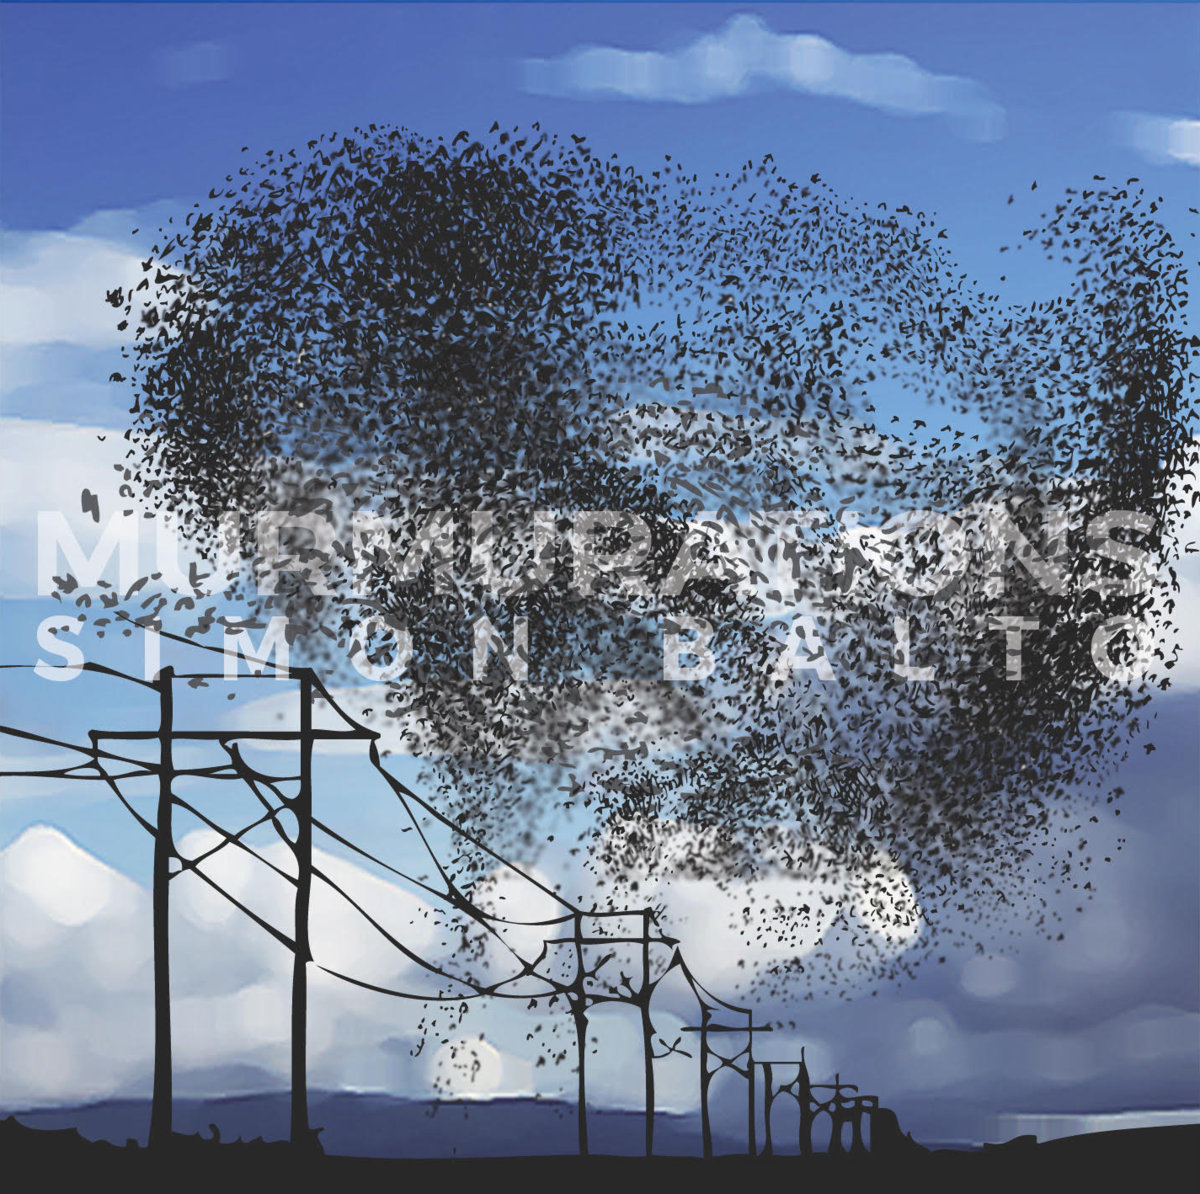 simon balto murmurations album art